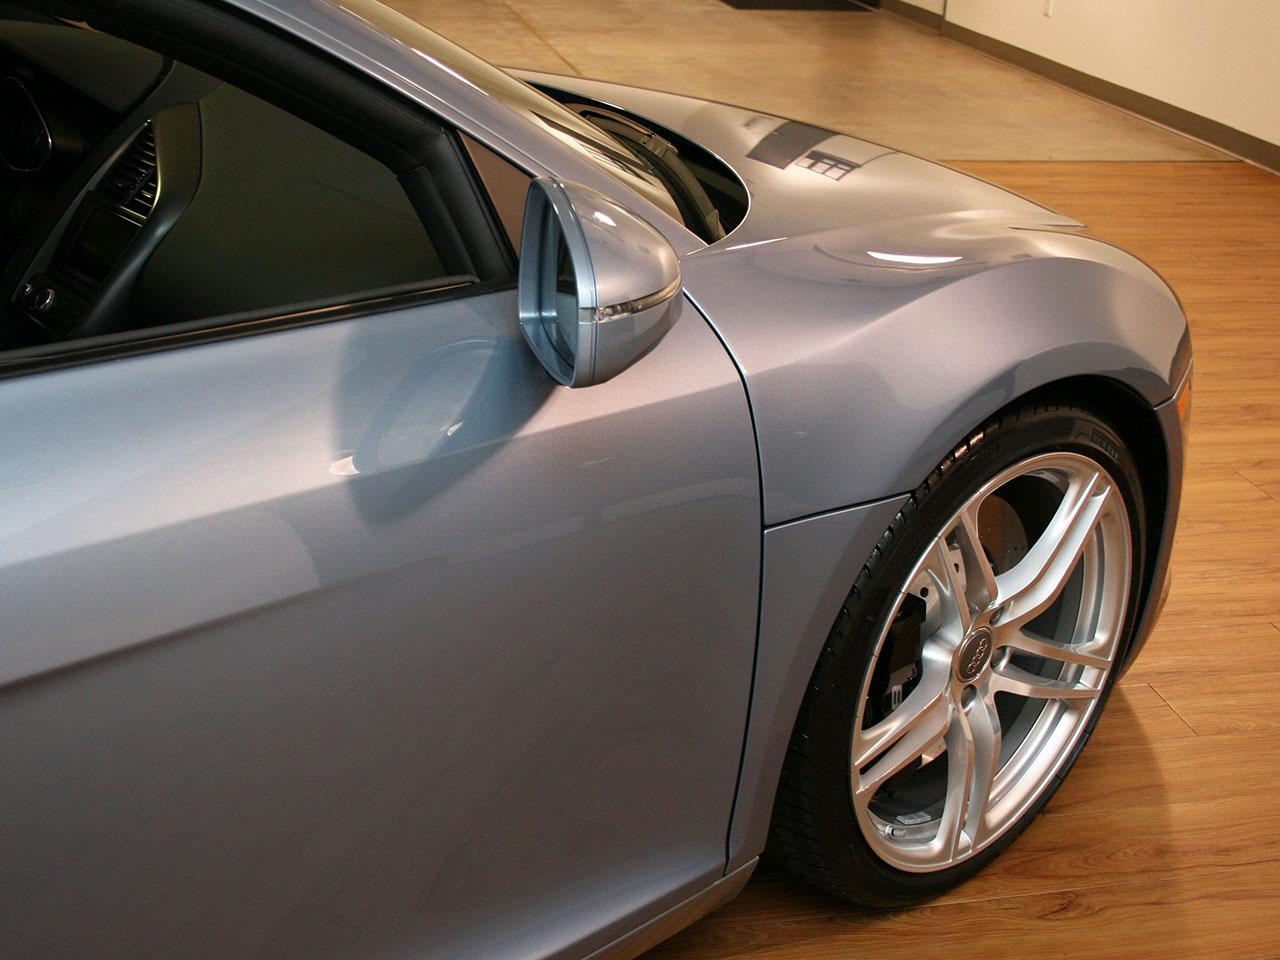 2008 audi r8 rear window replacement 2008 audi r8 rear for 2002 audi a4 rear window regulator